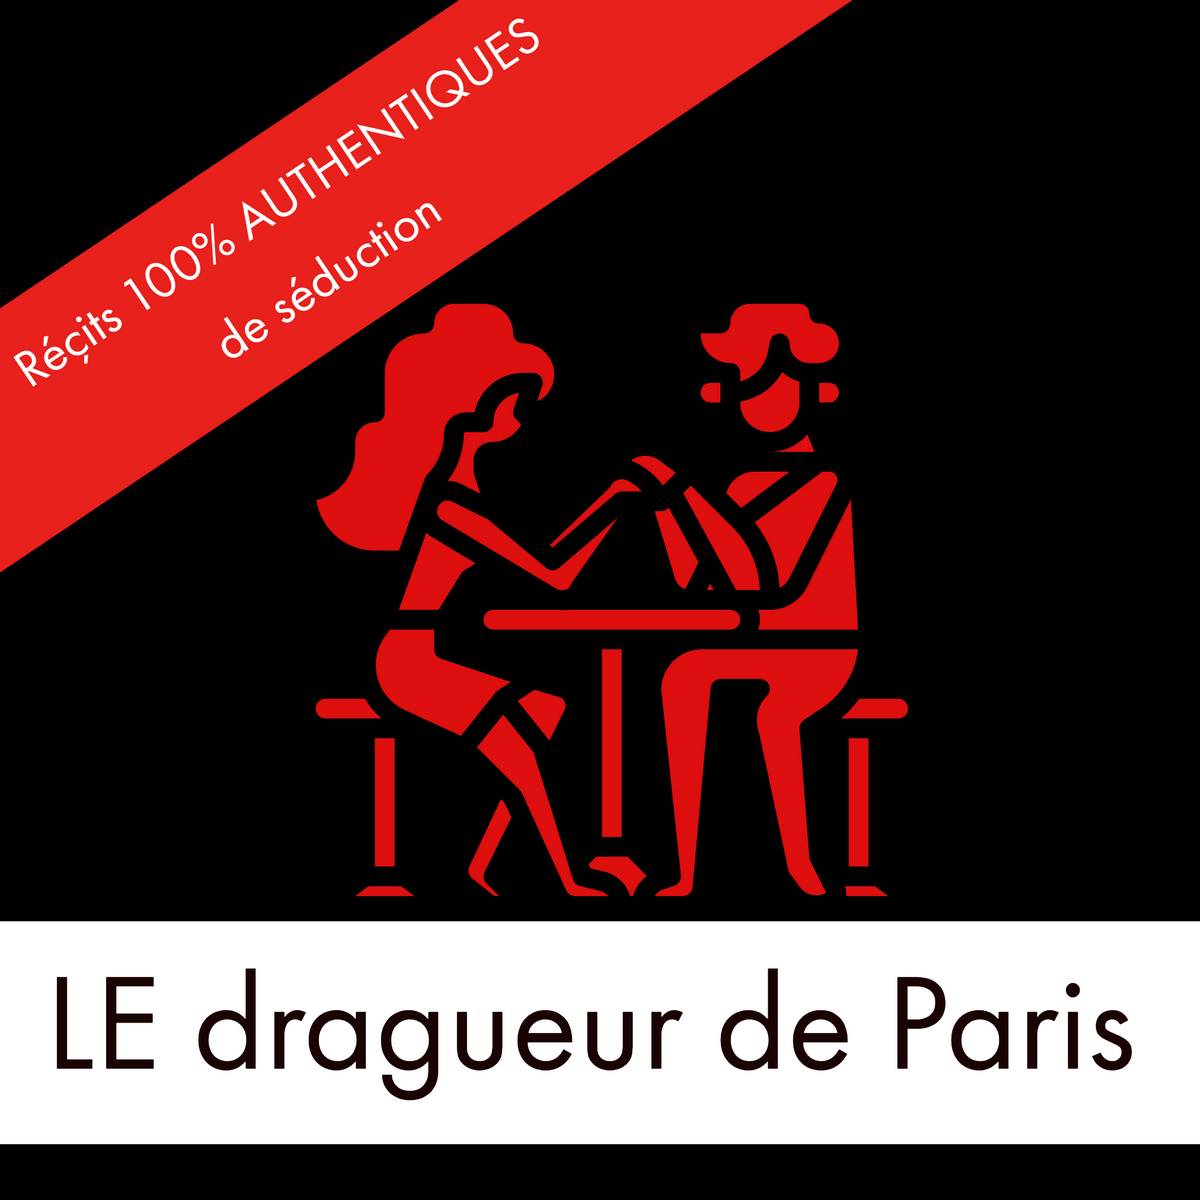 podcast-seduction-gratuit-dragueur-de-paris-draguer-une-fille